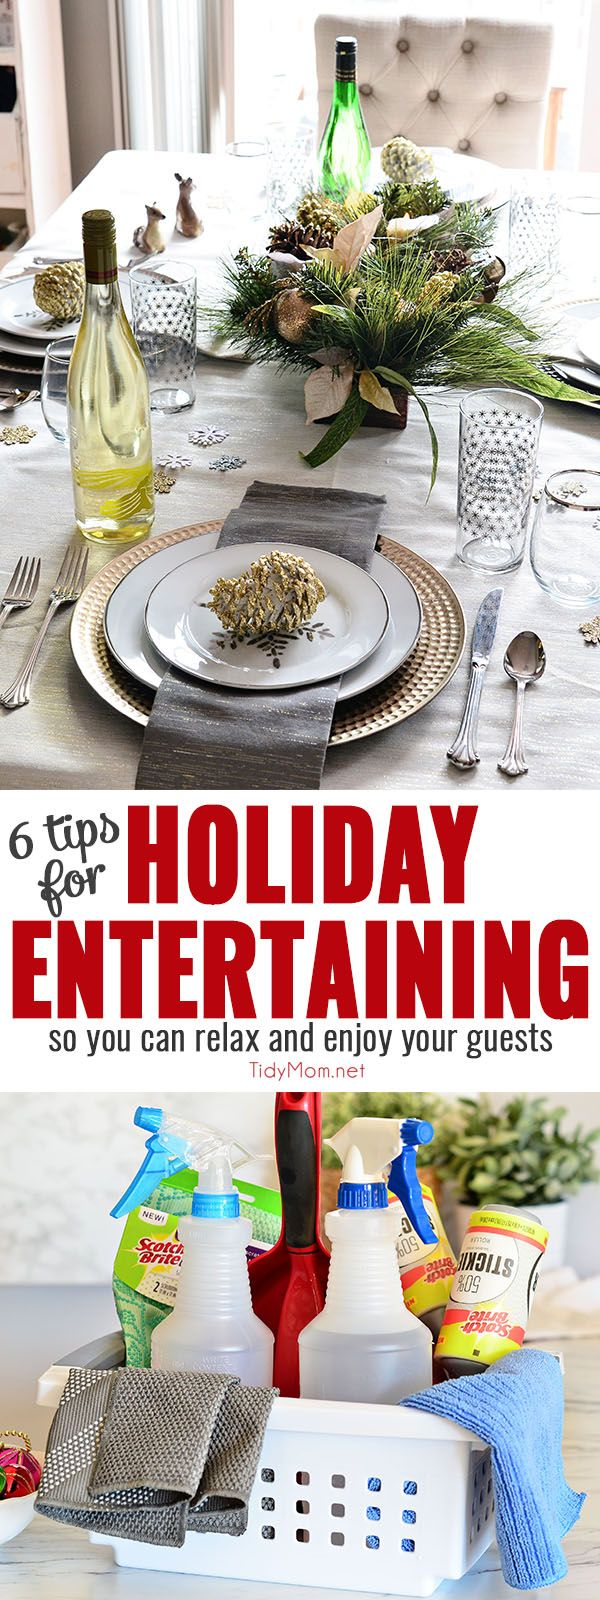 Holiday entertaining is upon us. One of my favorite holiday entertaining tips is to keep an emergency clean up kit handy for party spills and mishaps. 6 HOLIDAY ENTERTAINING TIPS - at TidyMom.net in partnership with @scotchbriteUS #cleanfeelsgood